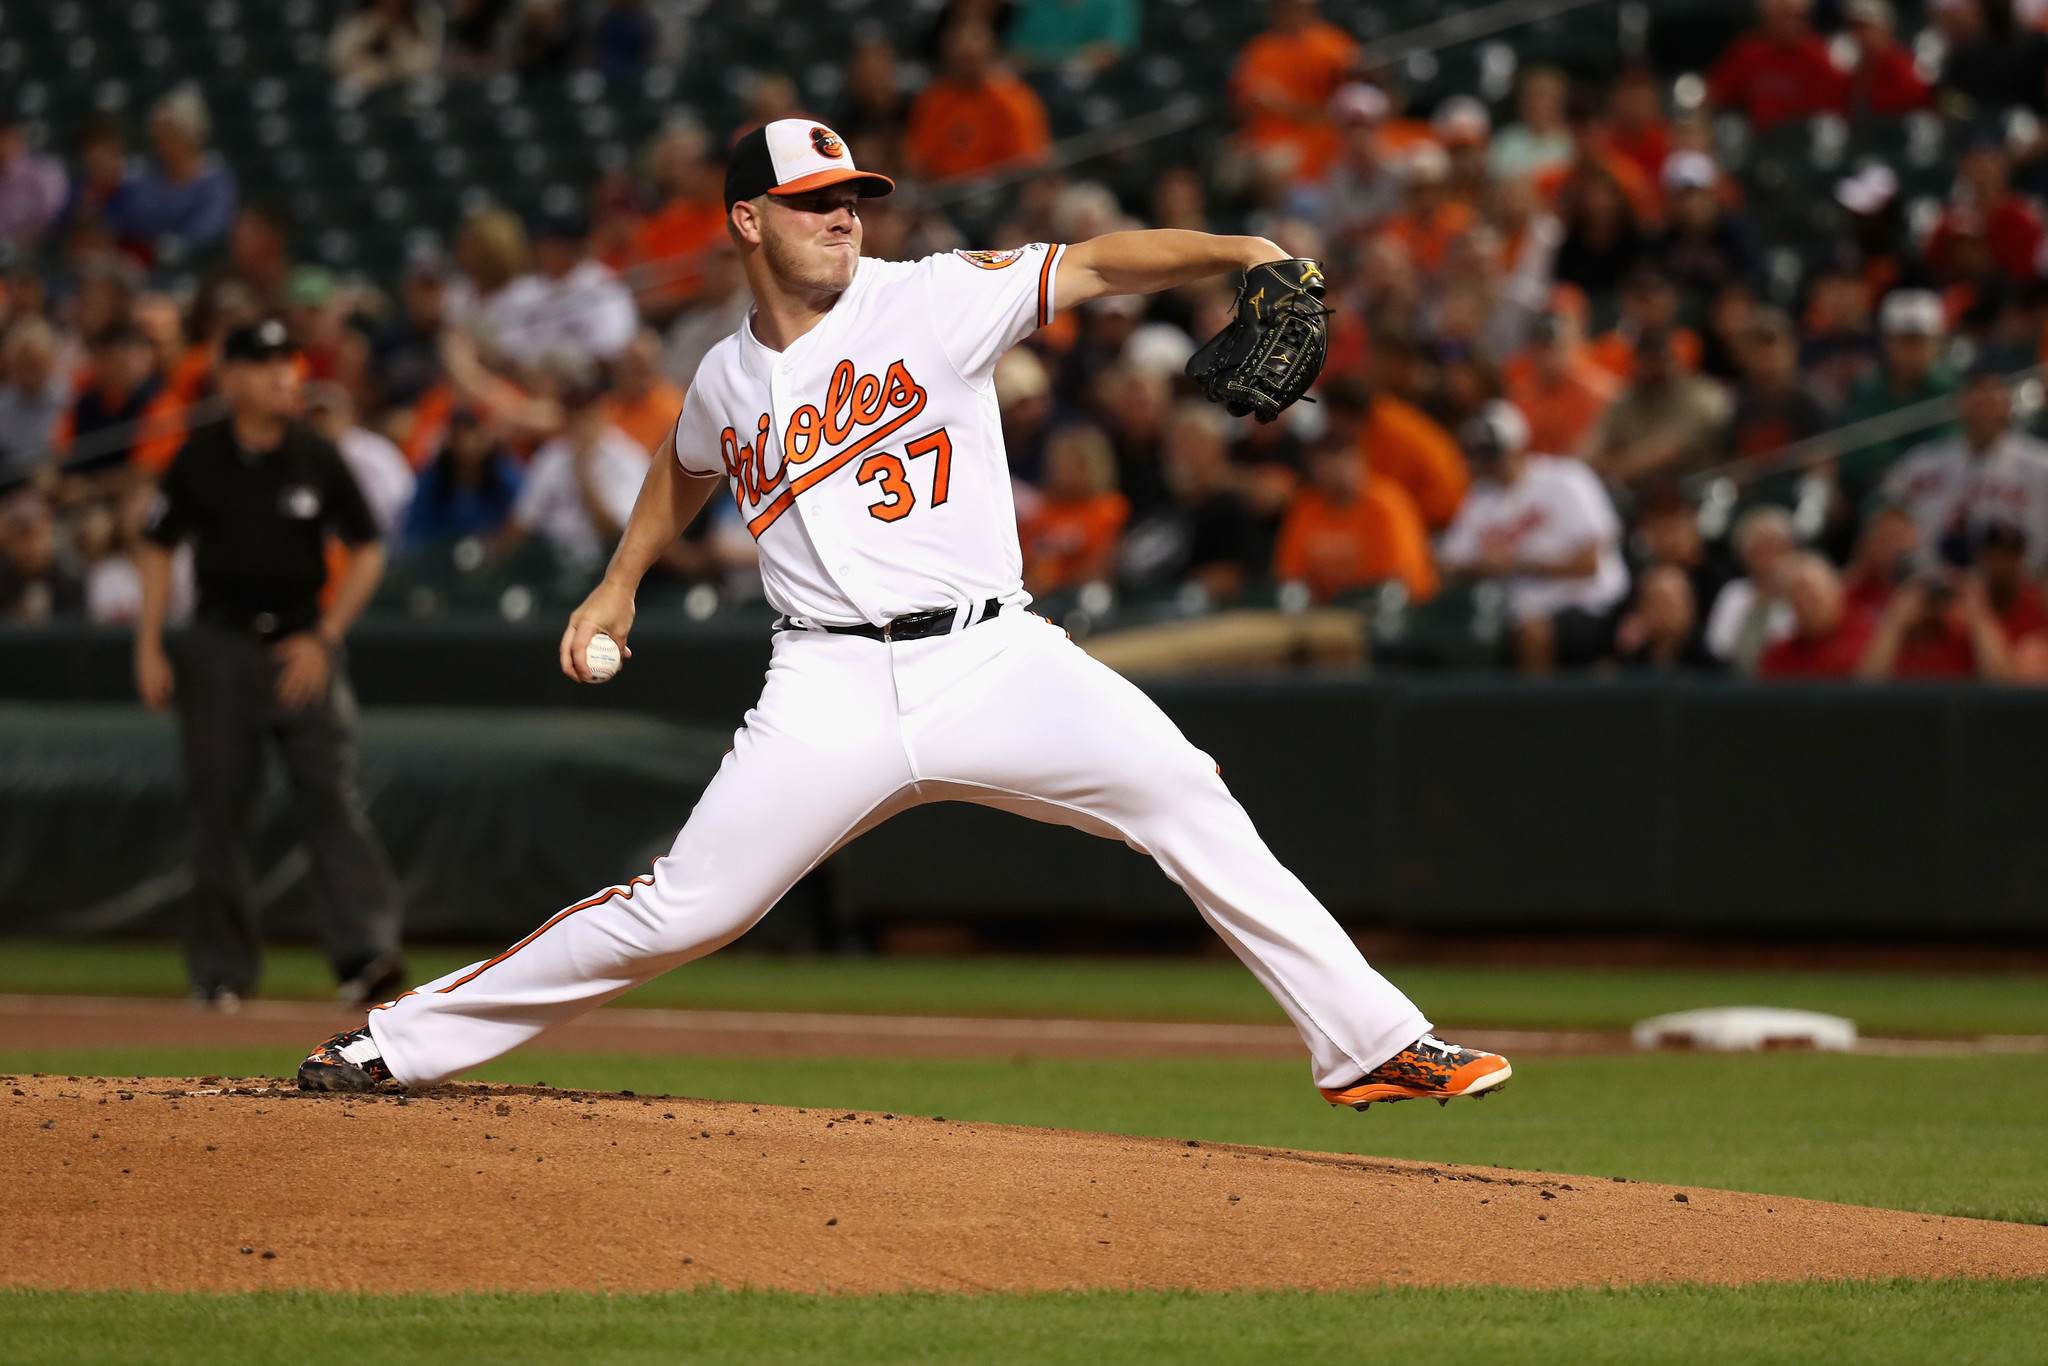 Bal-orioles-dylan-bundy-still-prioritizing-health-but-wants-to-add-cutter-back-to-repertoire-20160924